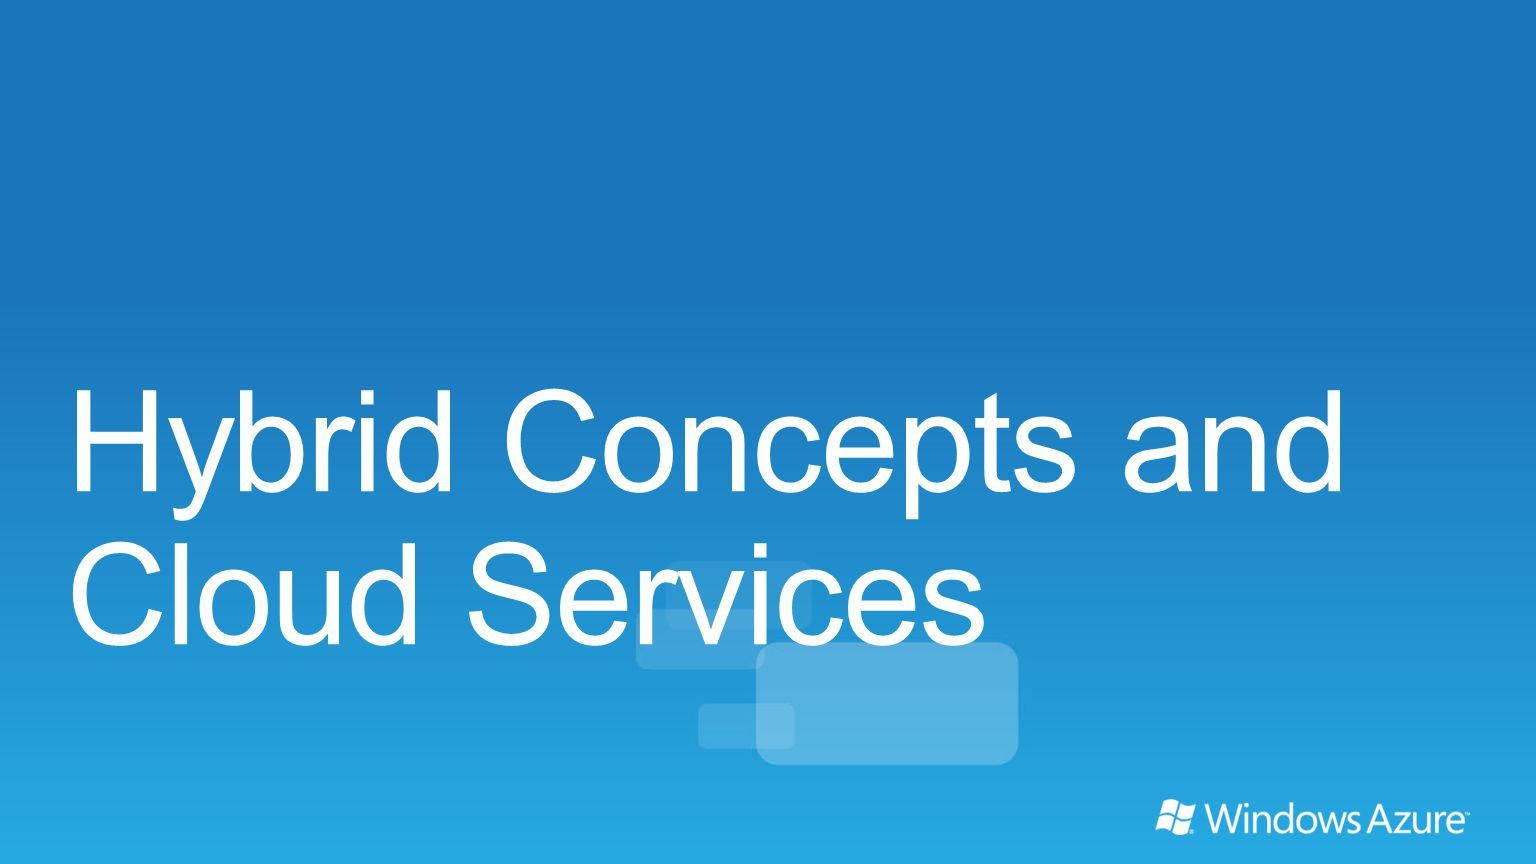 Hybrid Concepts and Cloud Services